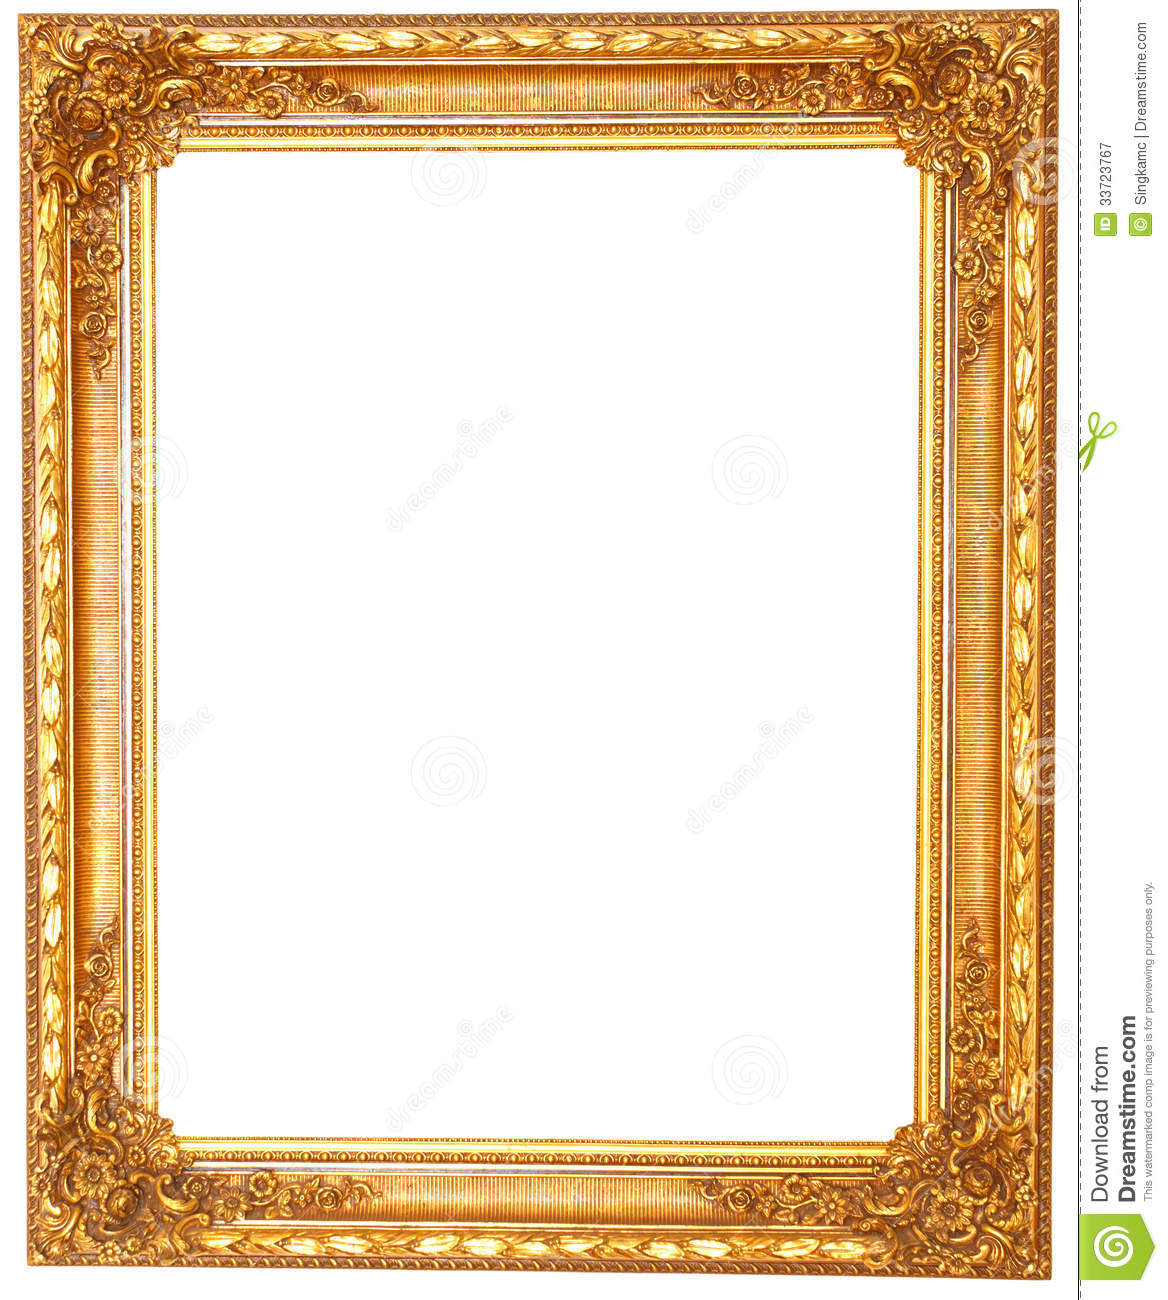 Old Antique Golden Frame Isolated On White Background